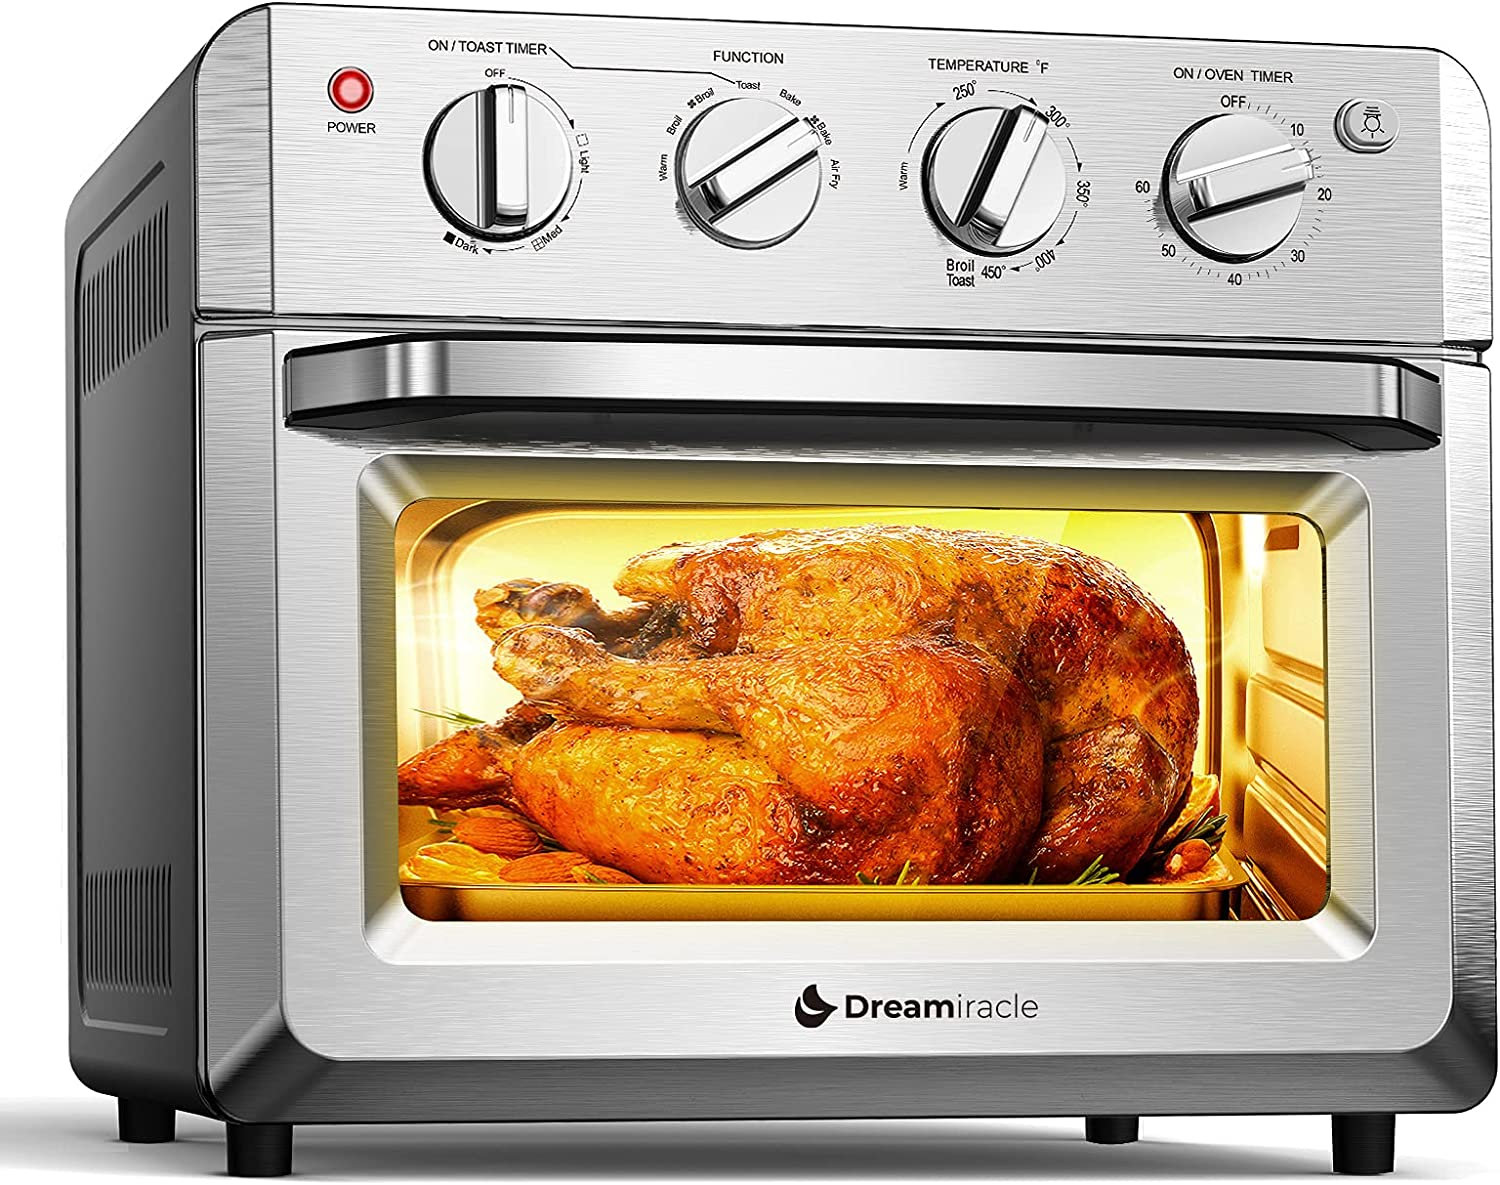 Dreamiracle Air Fryer Toaster Oven Combo 21 Quart 7-in-1 Countertop Dehydrator for Chicken, Pizza, Cookies, 1550W, 4 Accessories Included, Easy to Control with Timer Bake Broil Toast Setting, 6-Slice